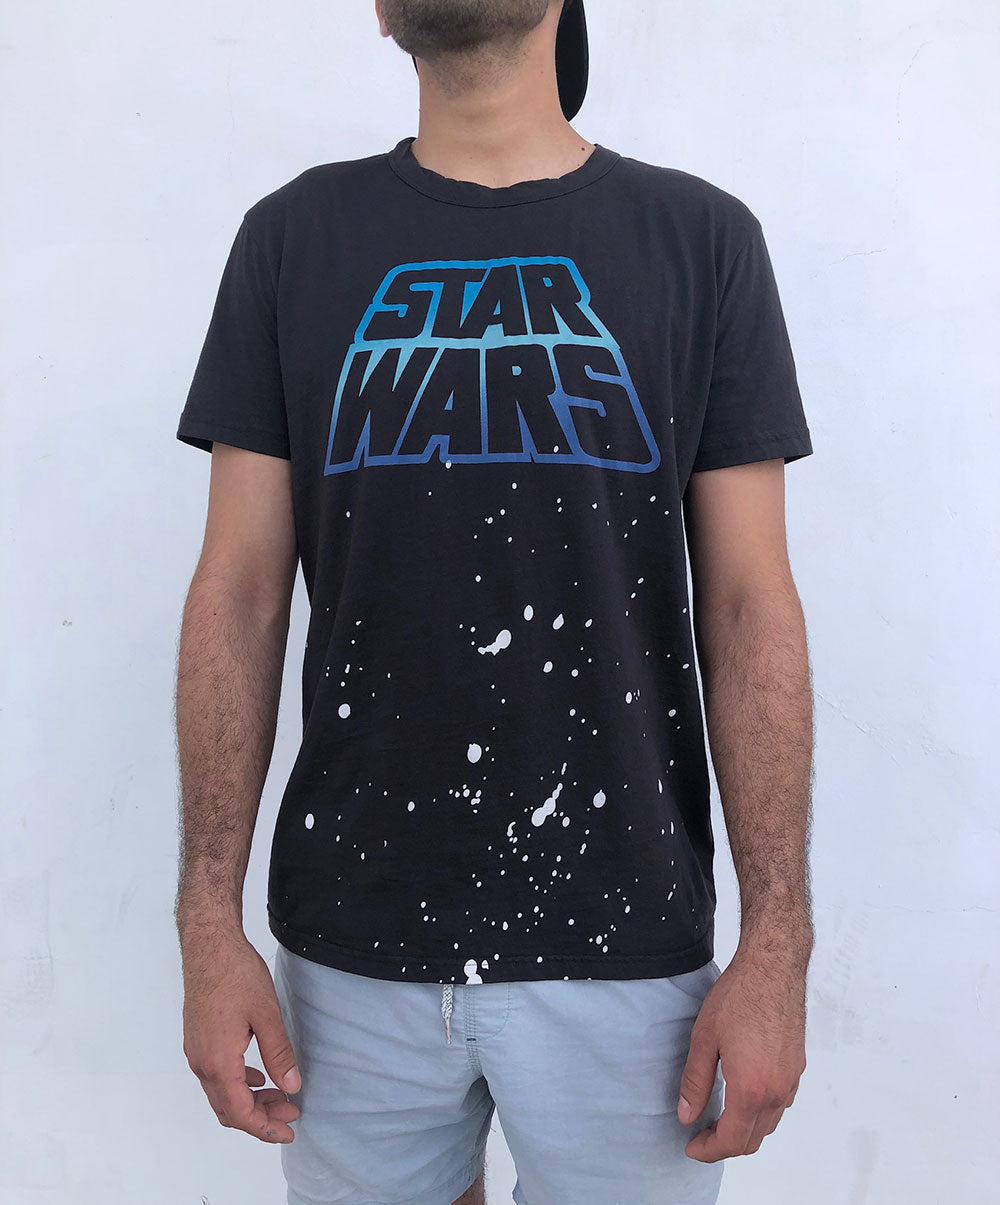 STAR WARS - BLUE STAR WARS MENS chaserbrand4.myshopify.com